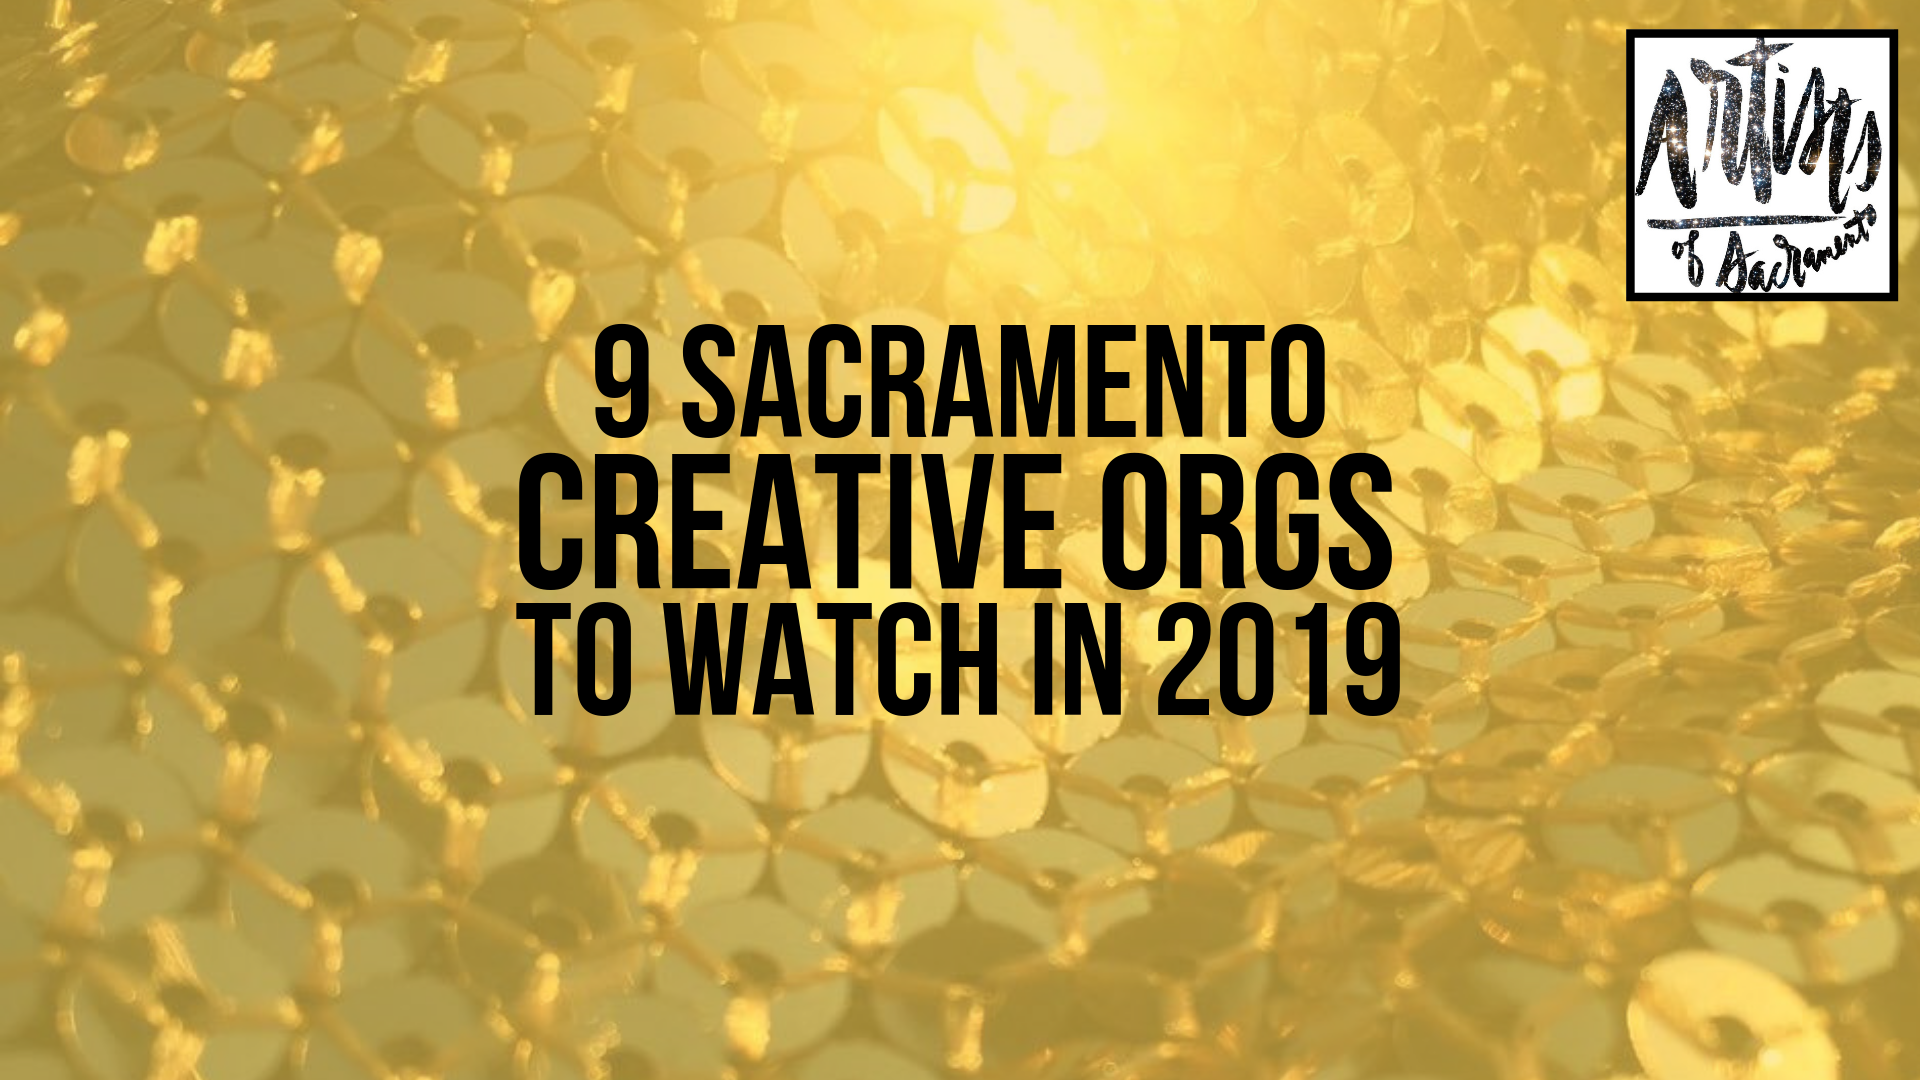 9 Sacramento Creative orgs to watch in 2019 (1)